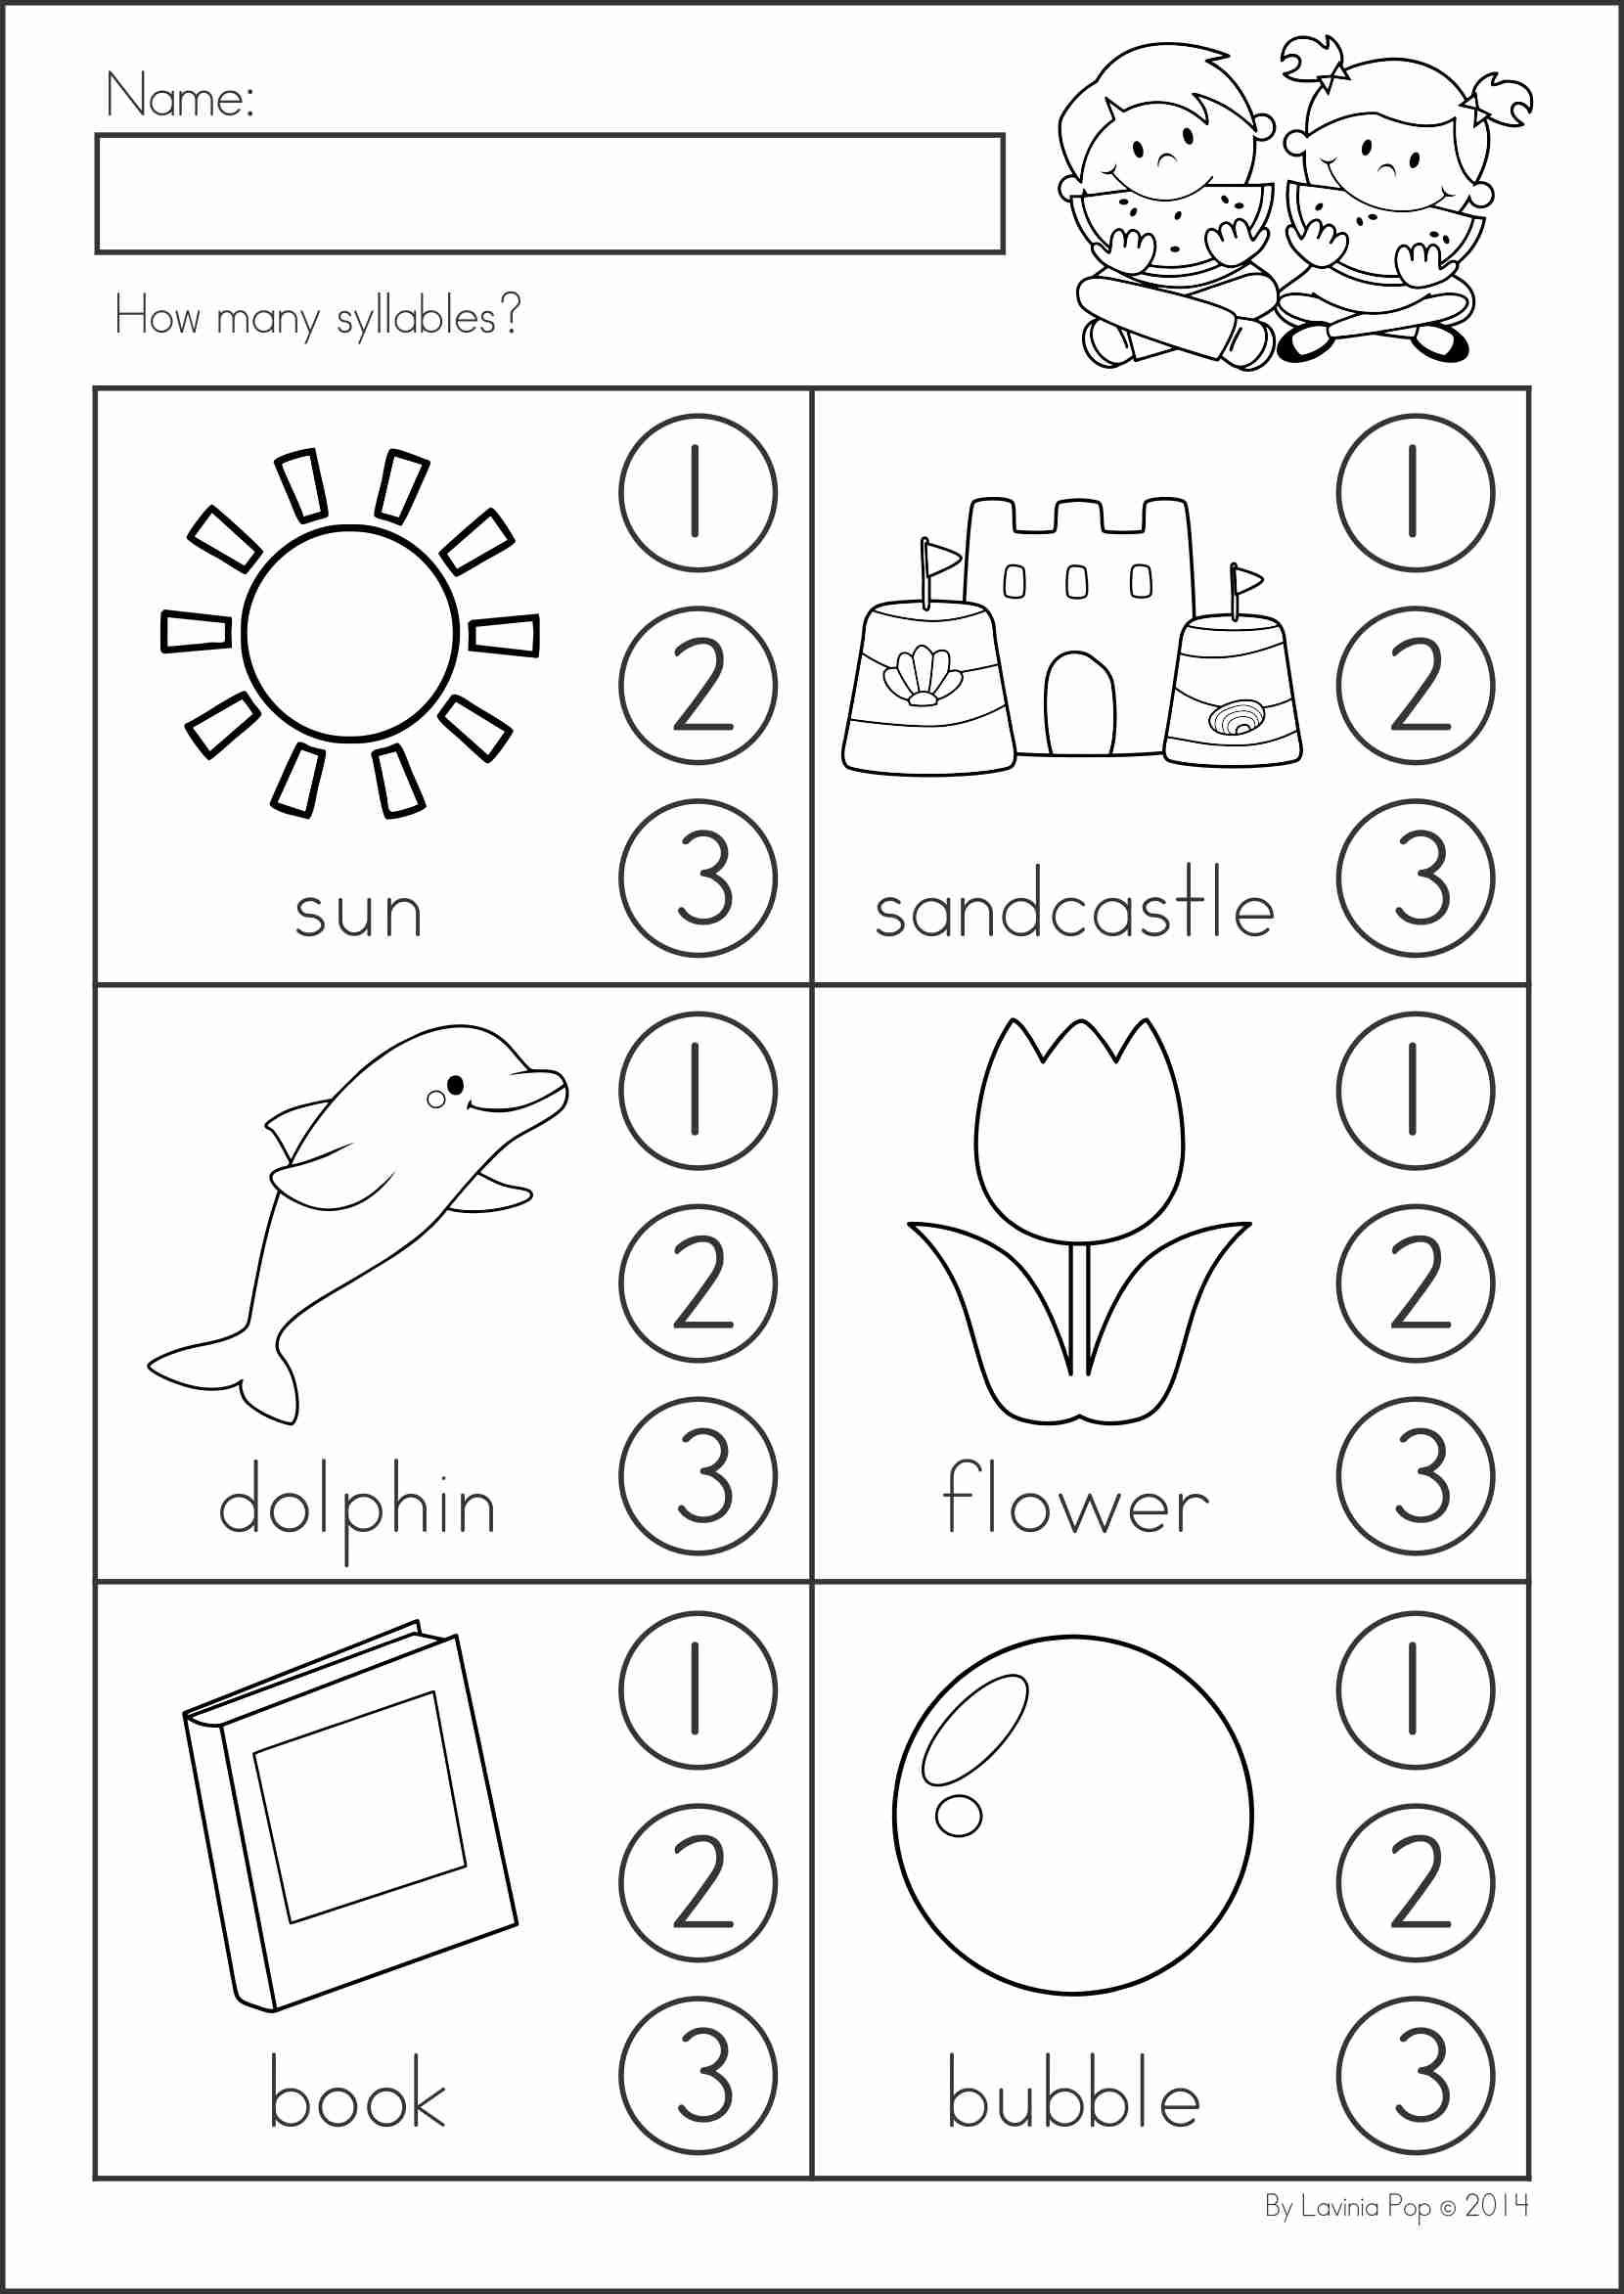 Pin By Anita Aragon On Creatividad Syllable Worksheet Free Kindergarten Worksheets Literacy Worksheets